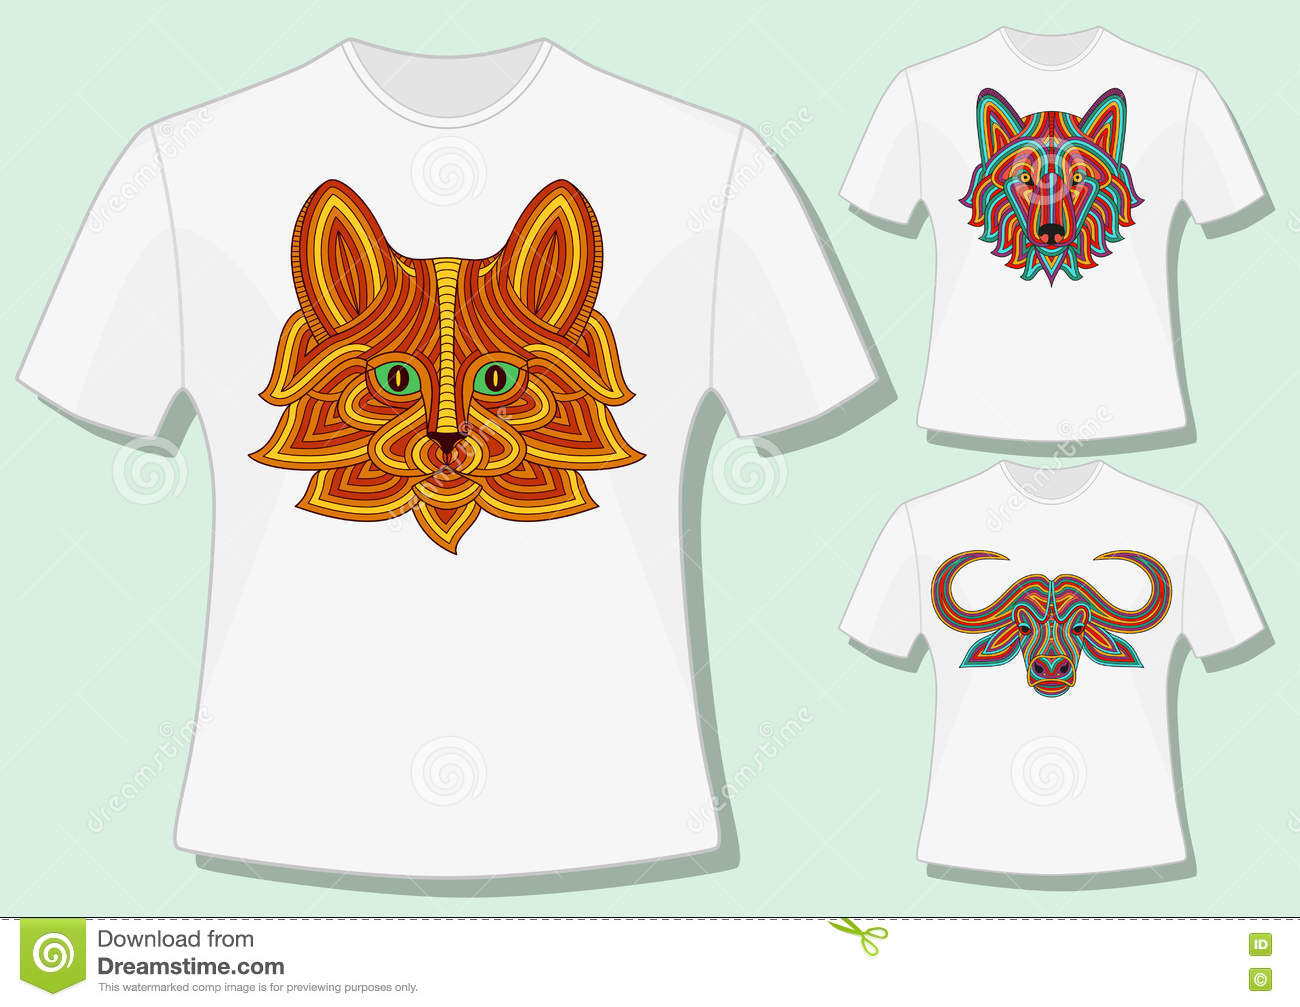 Shirt design style - Creative Stylized Animal Heads In Ethnic Linear Style T Shirt Design